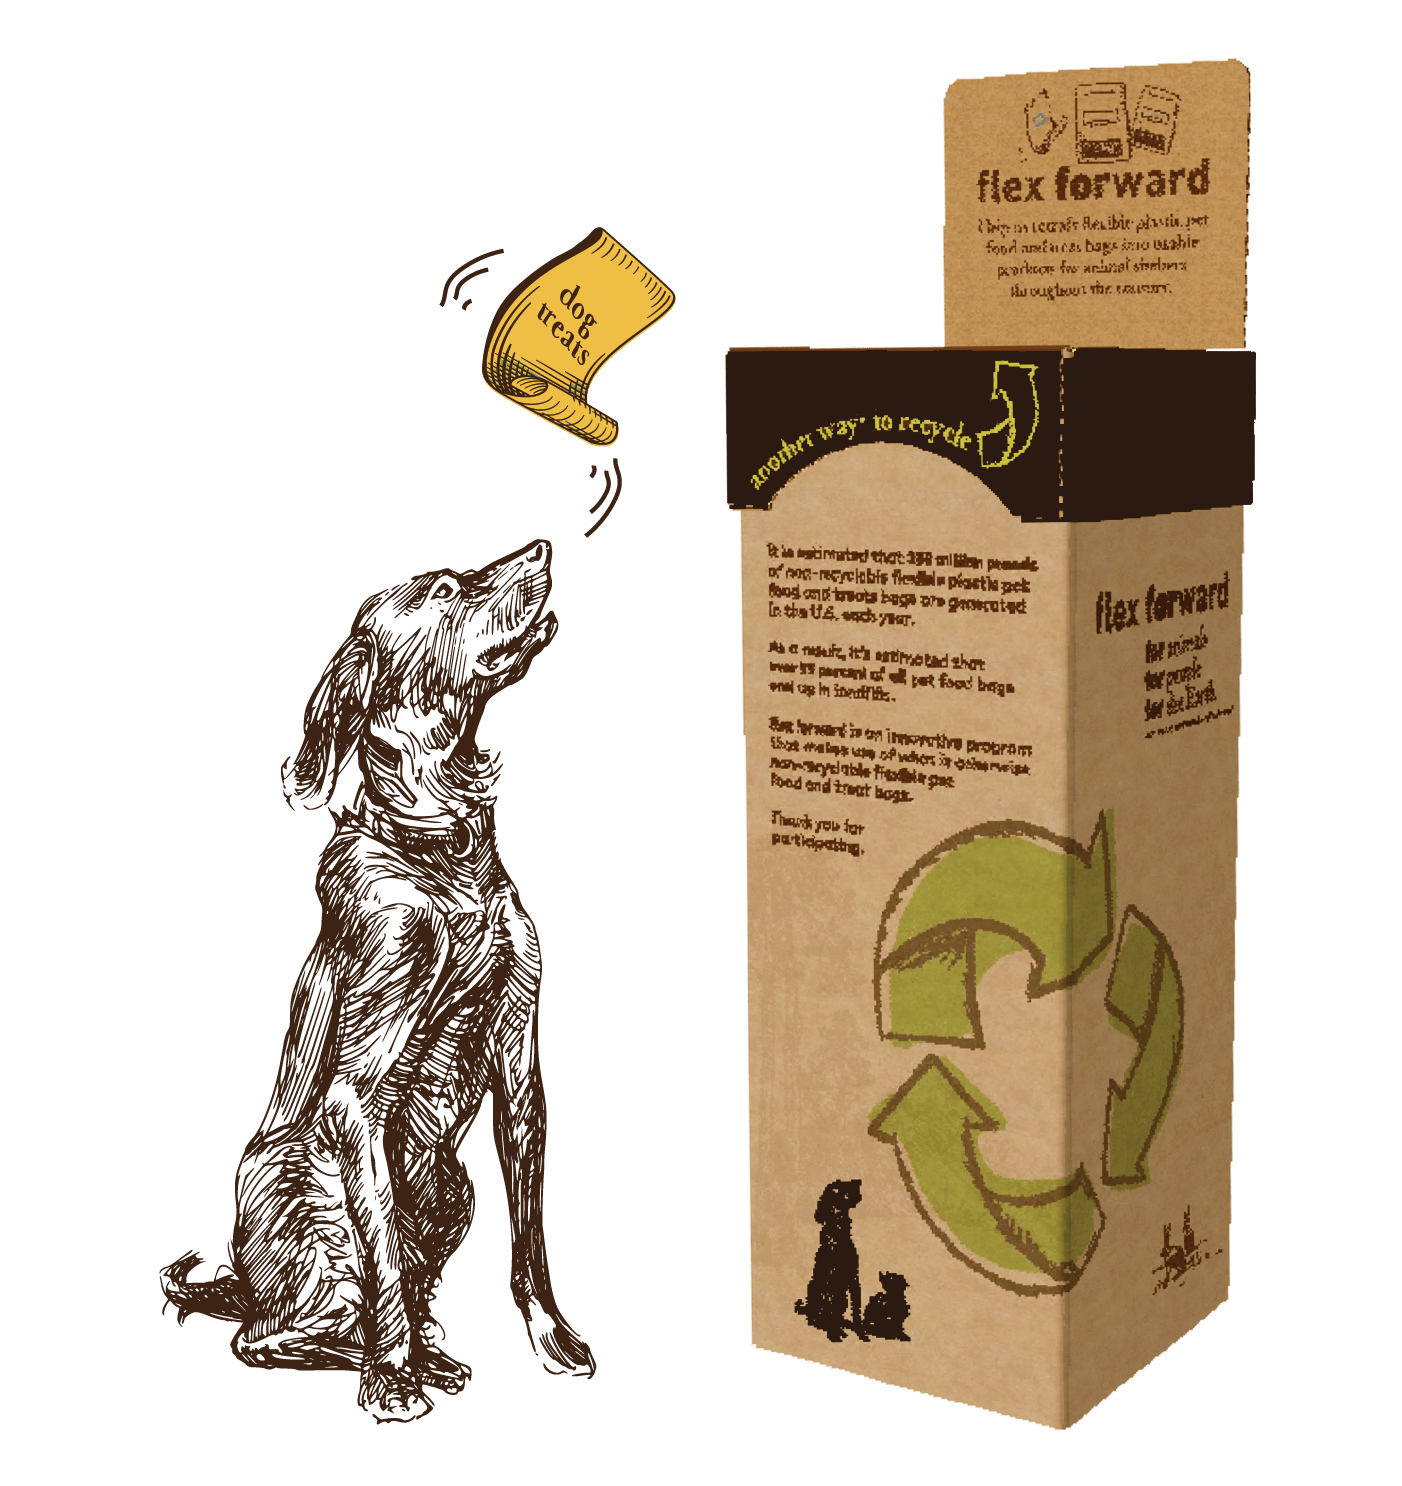 New Flex Forward Pilot Program Aims to Bring Groundbreaking  Recycling Solutions to the Pet Industry.